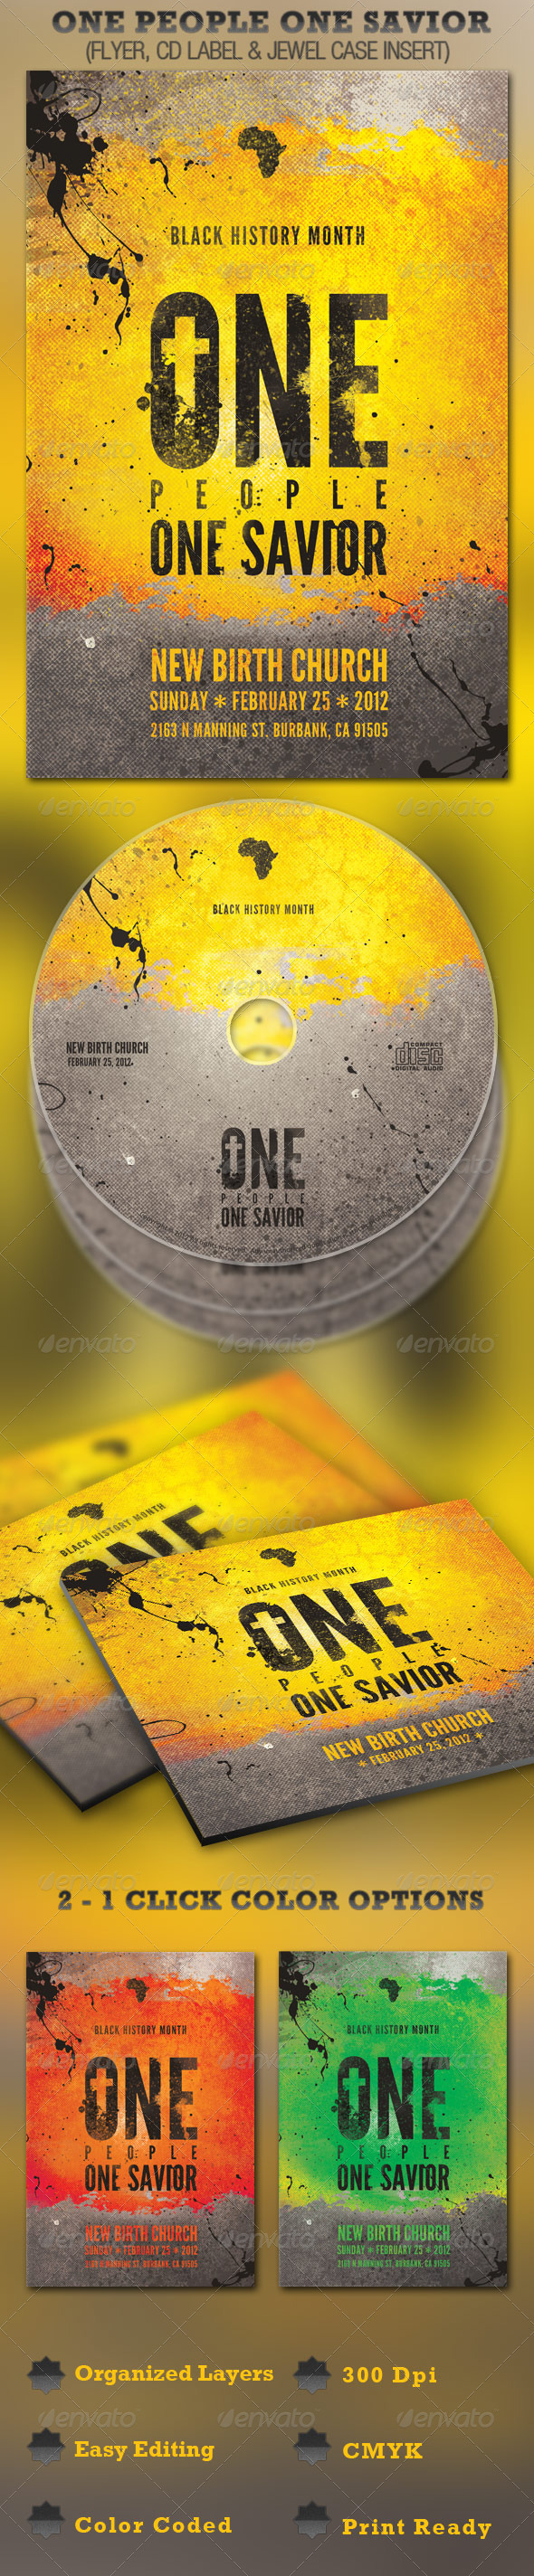 One People One Savior Church Flyer and CD Template - Church Flyers